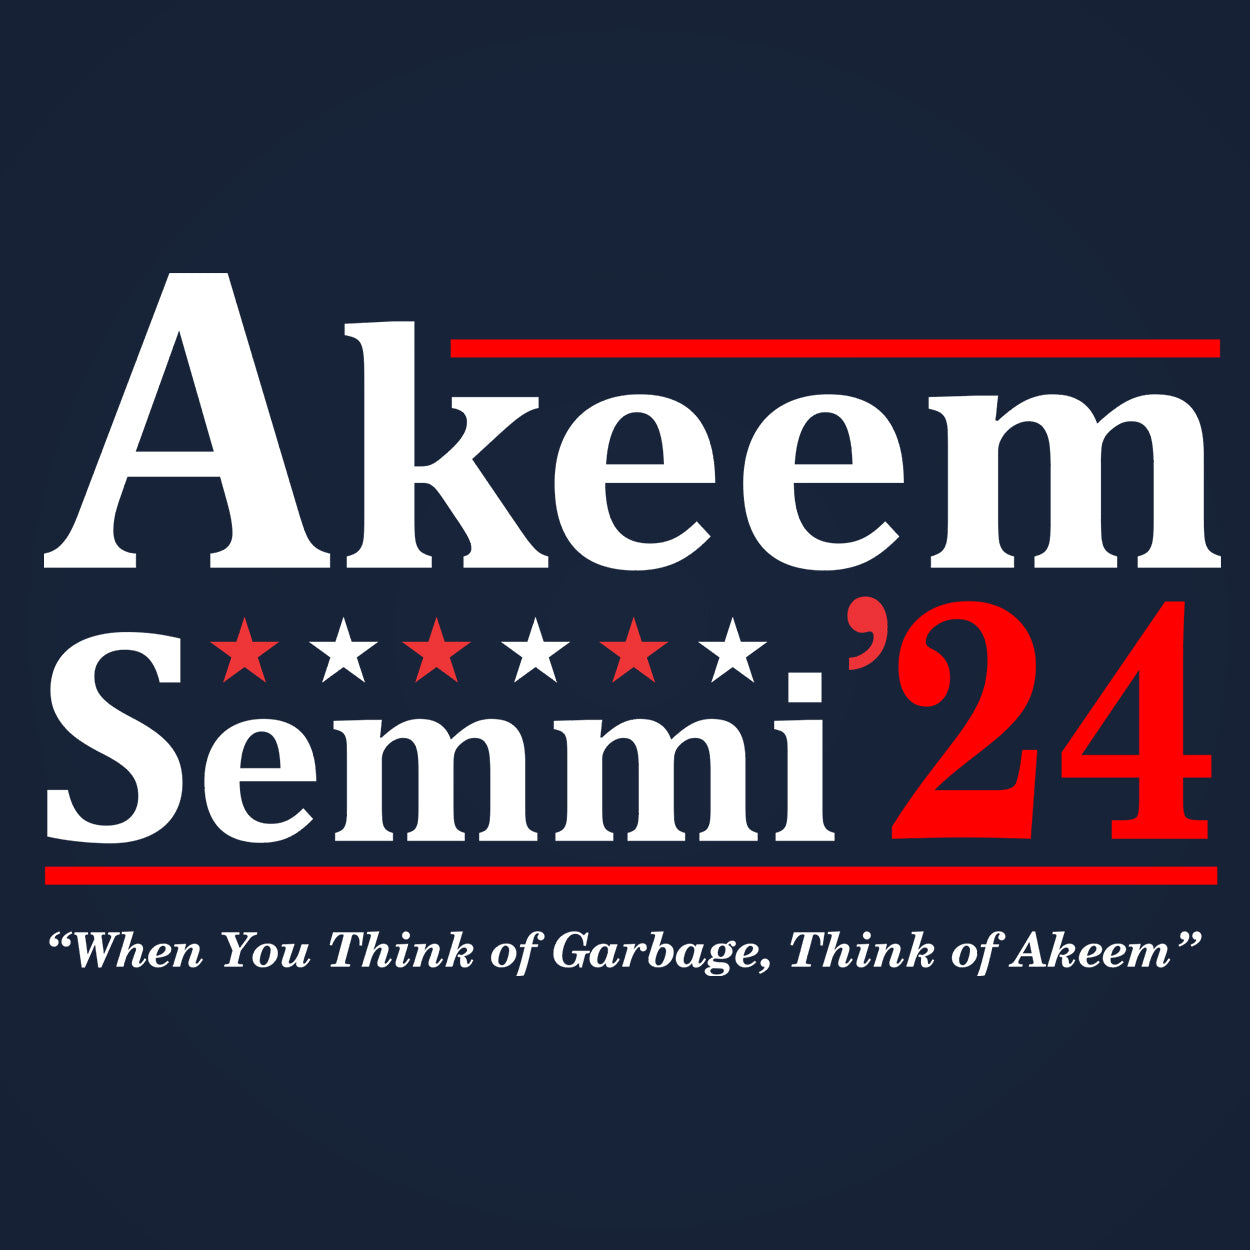 Akeem and Semmi 2024 Election